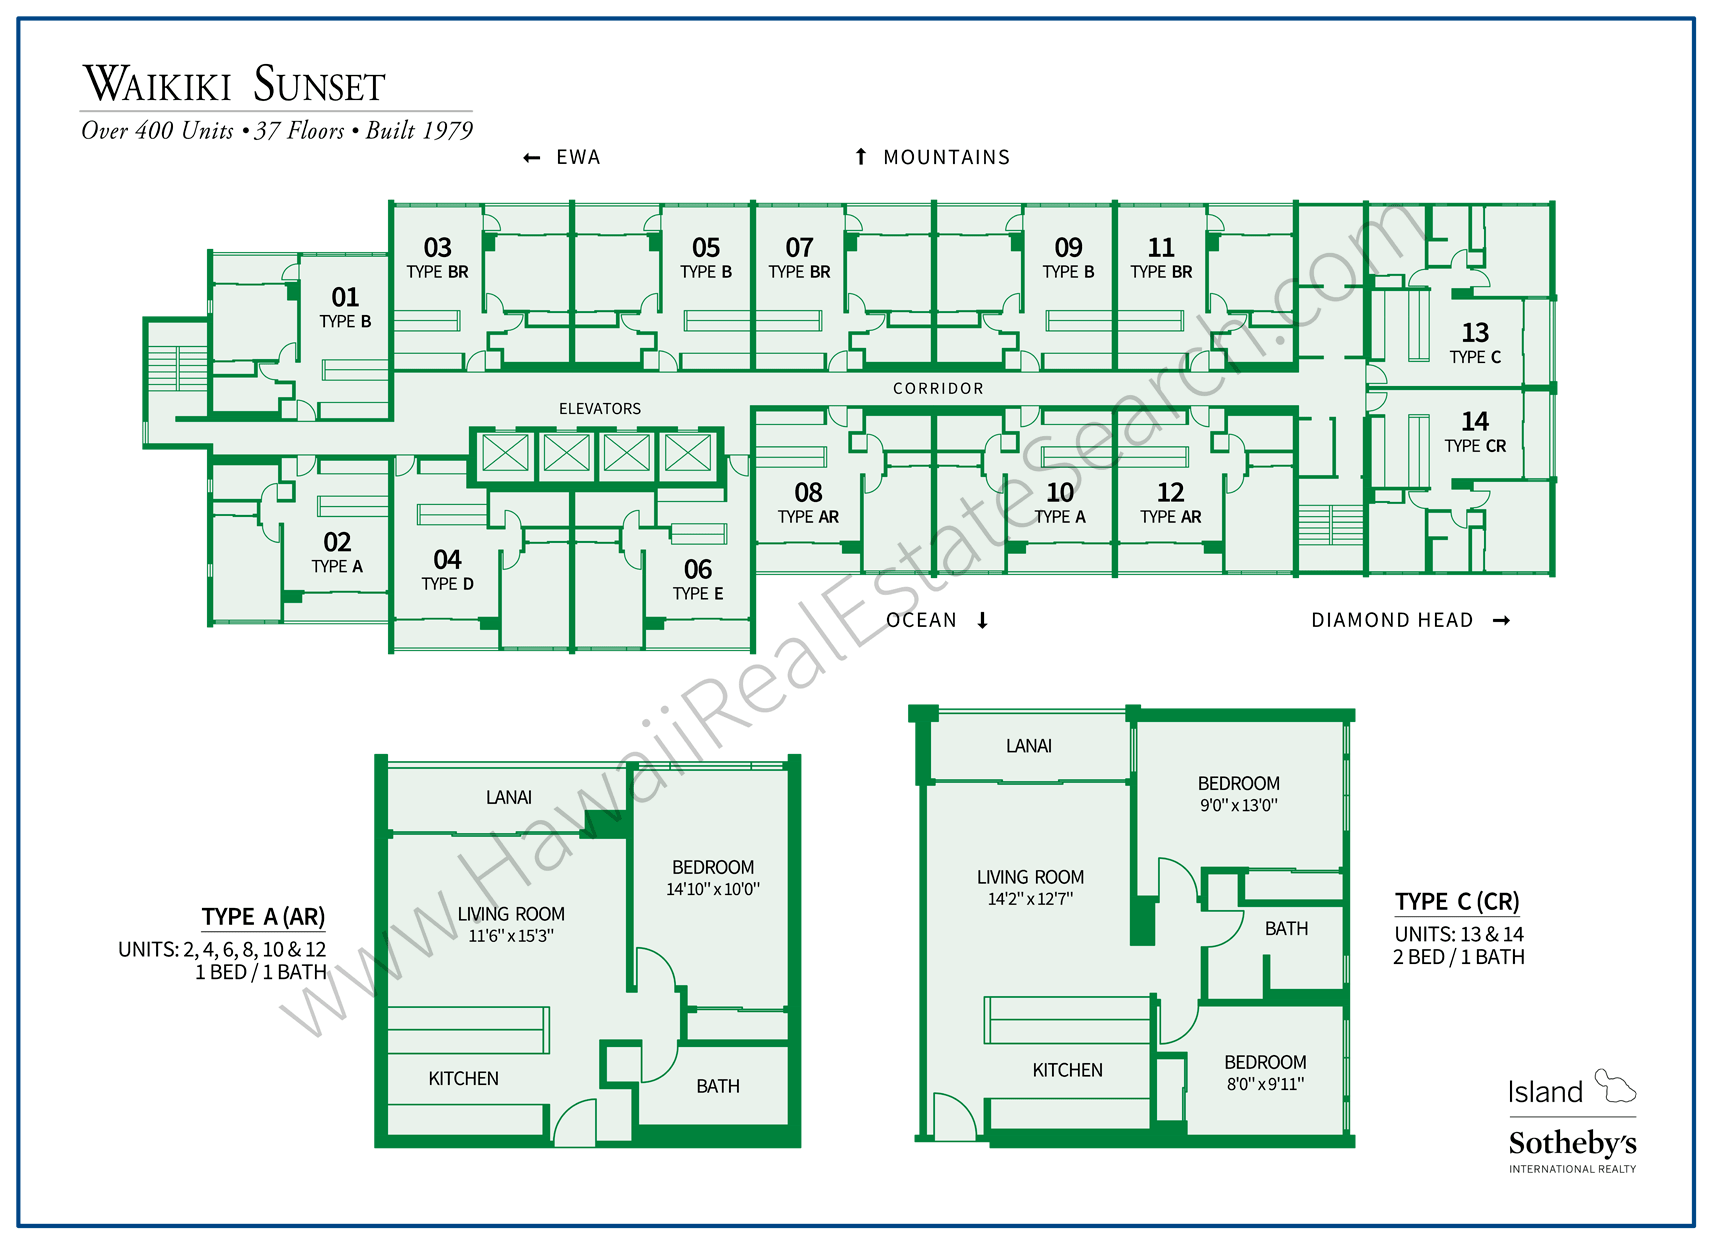 Waikiki Sunset Property Map